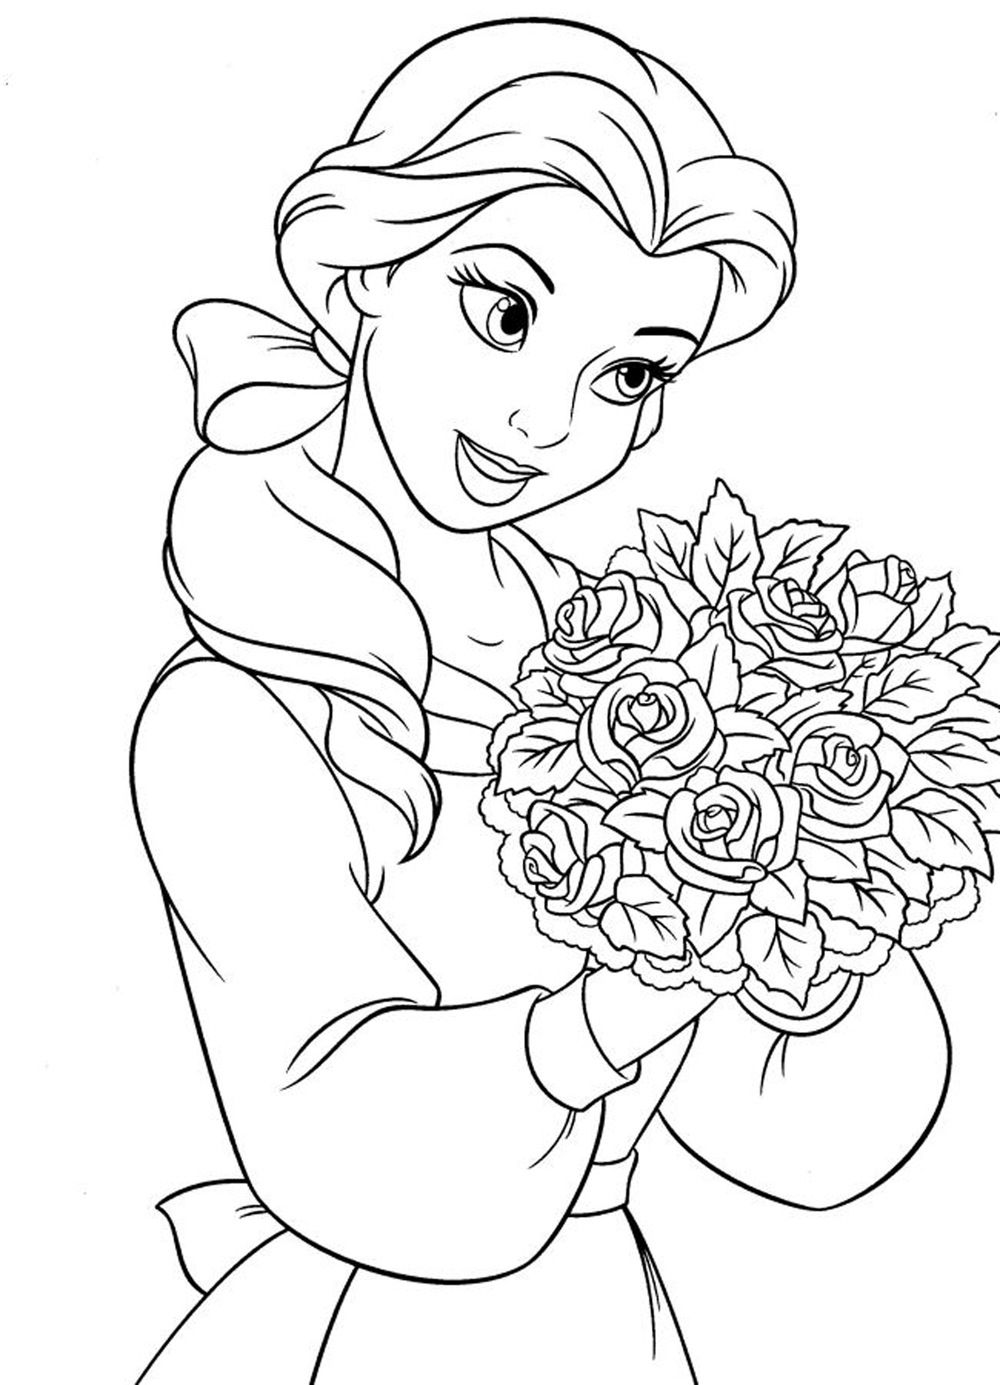 girl for coloring coloring pages for girls dr odd for coloring girl